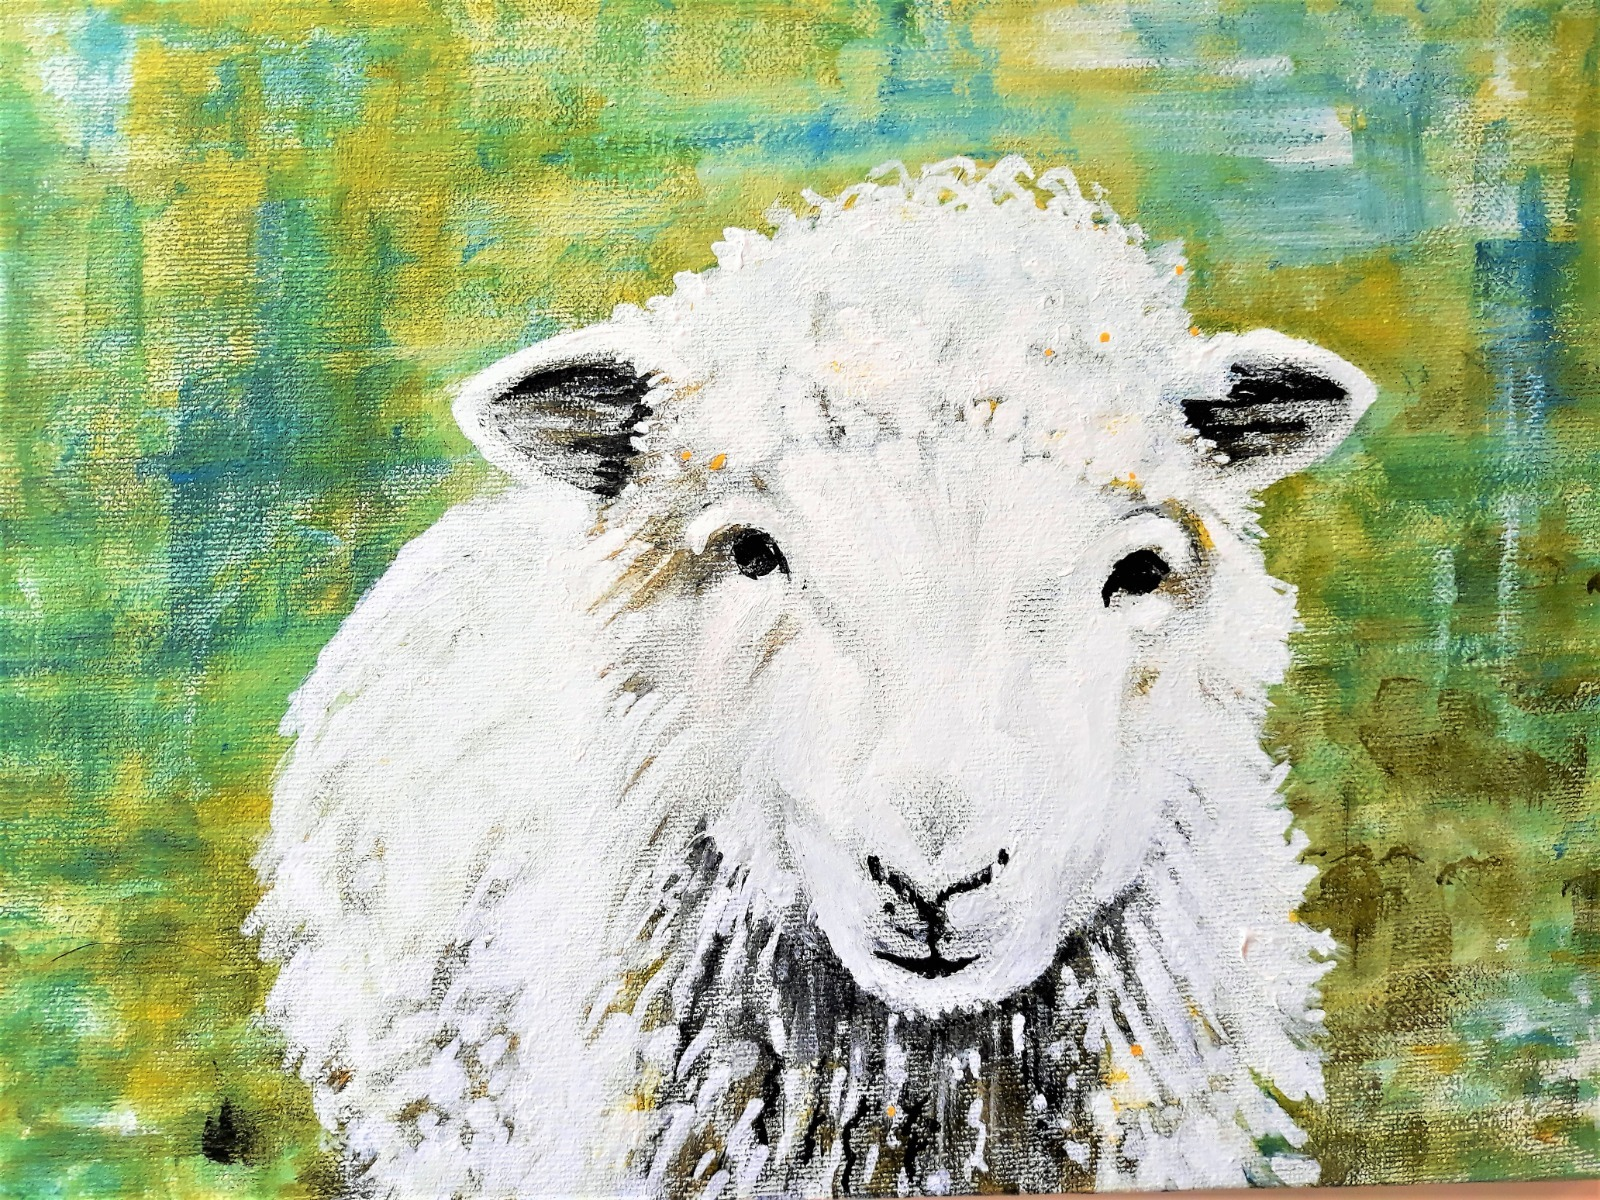 The Friendly Sheep